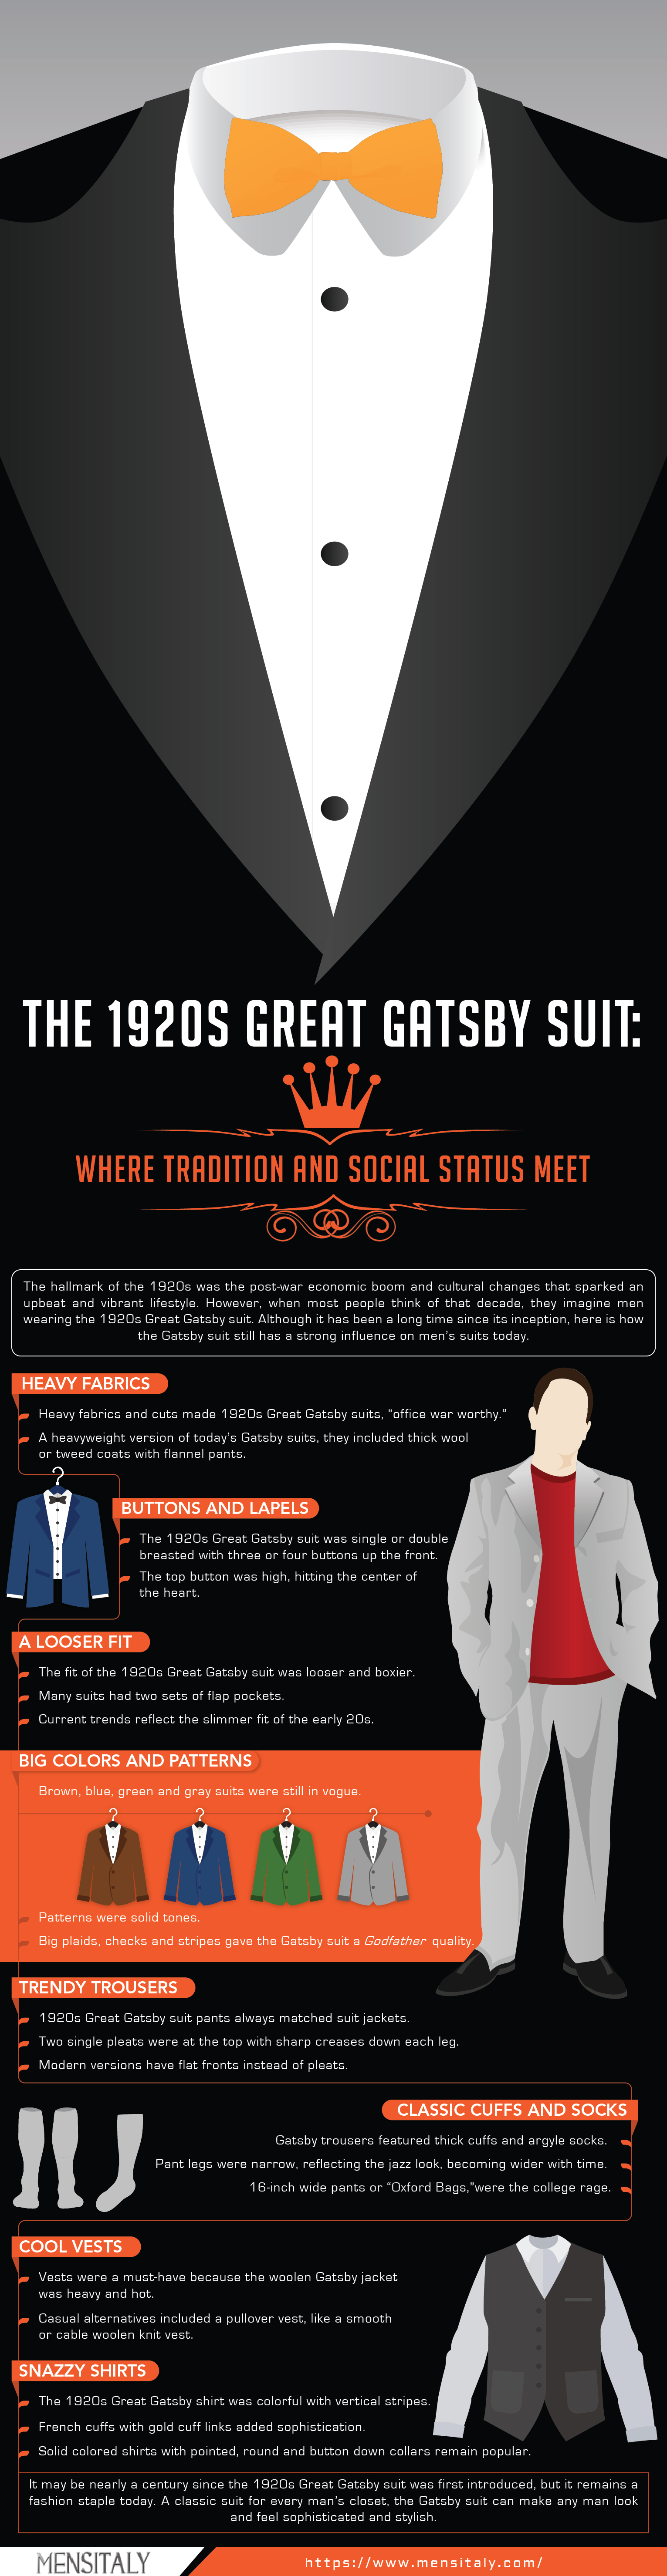 the-1920s-great-gatsby-suit-where-tradition-and-social-status-meet